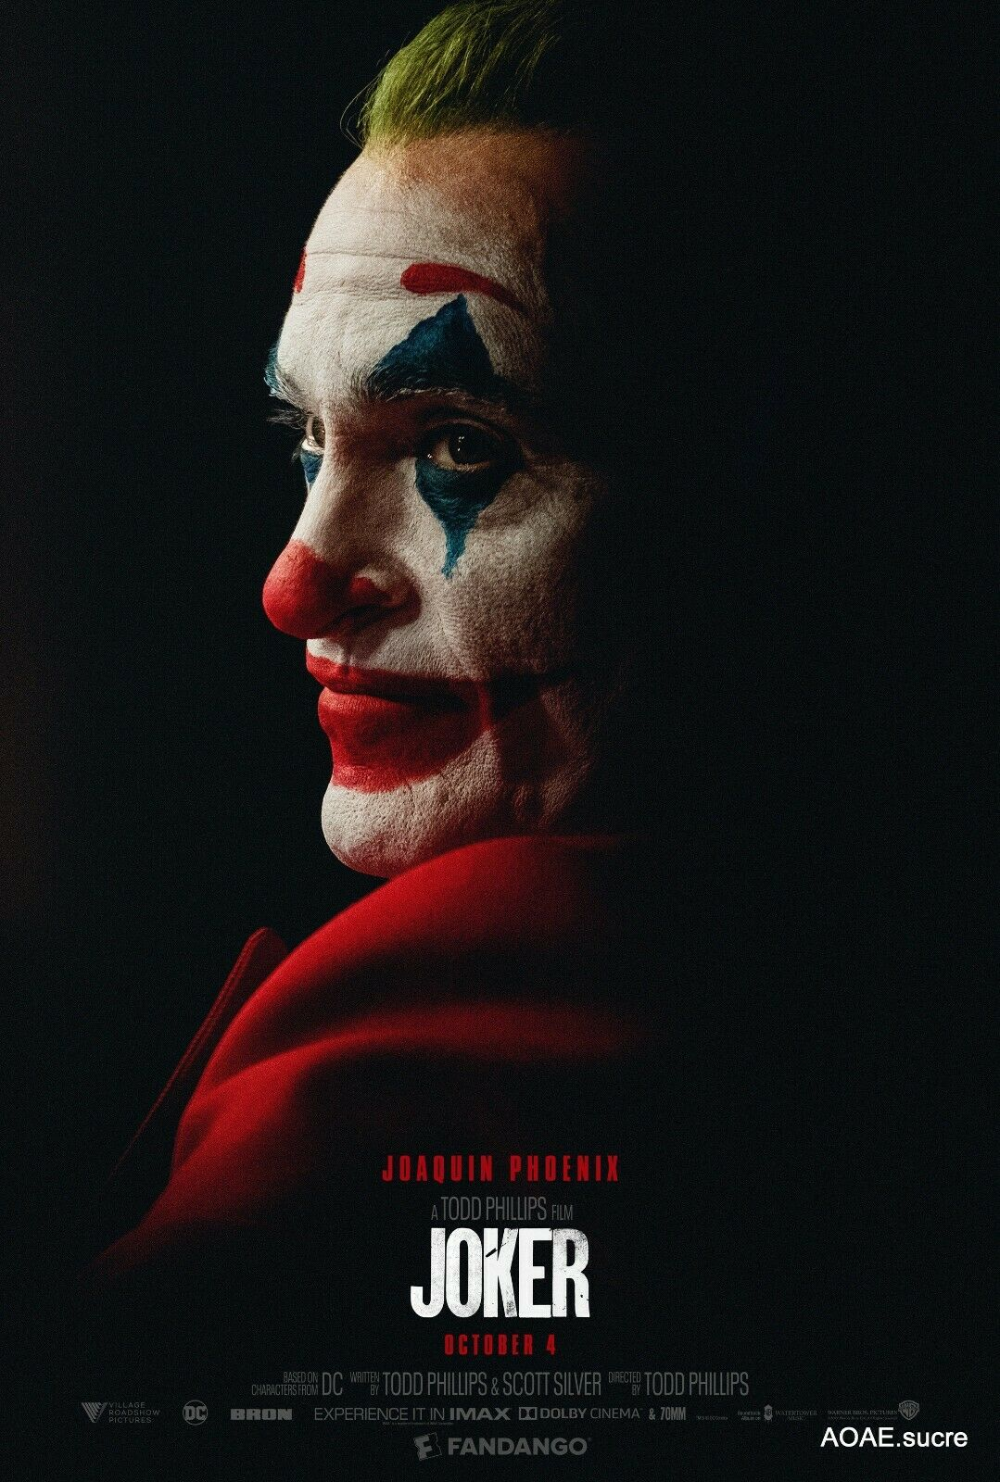 Joaquin Phoenix As The Joker With Images Joker Poster